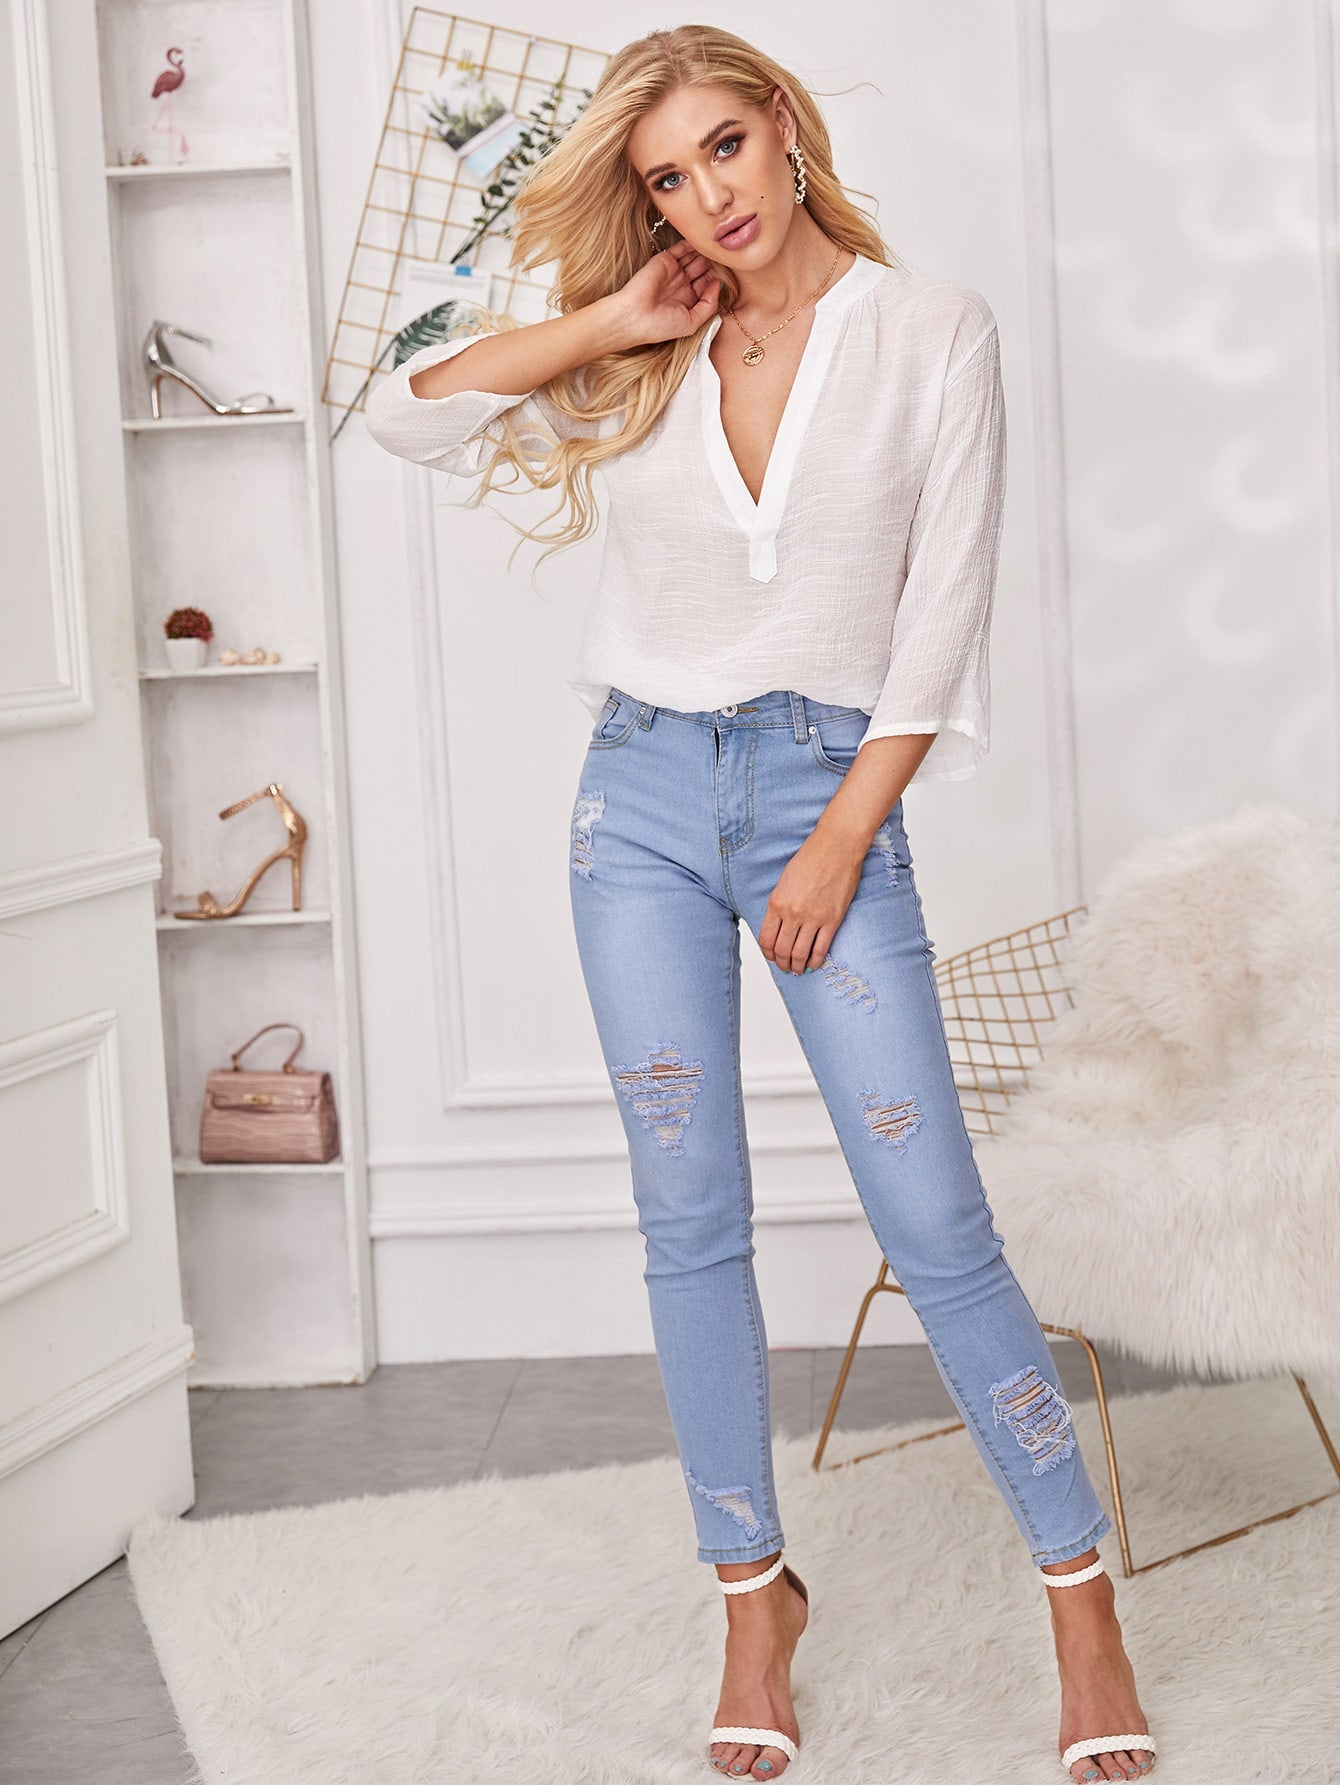 Deep V Neck Sheer Blouse